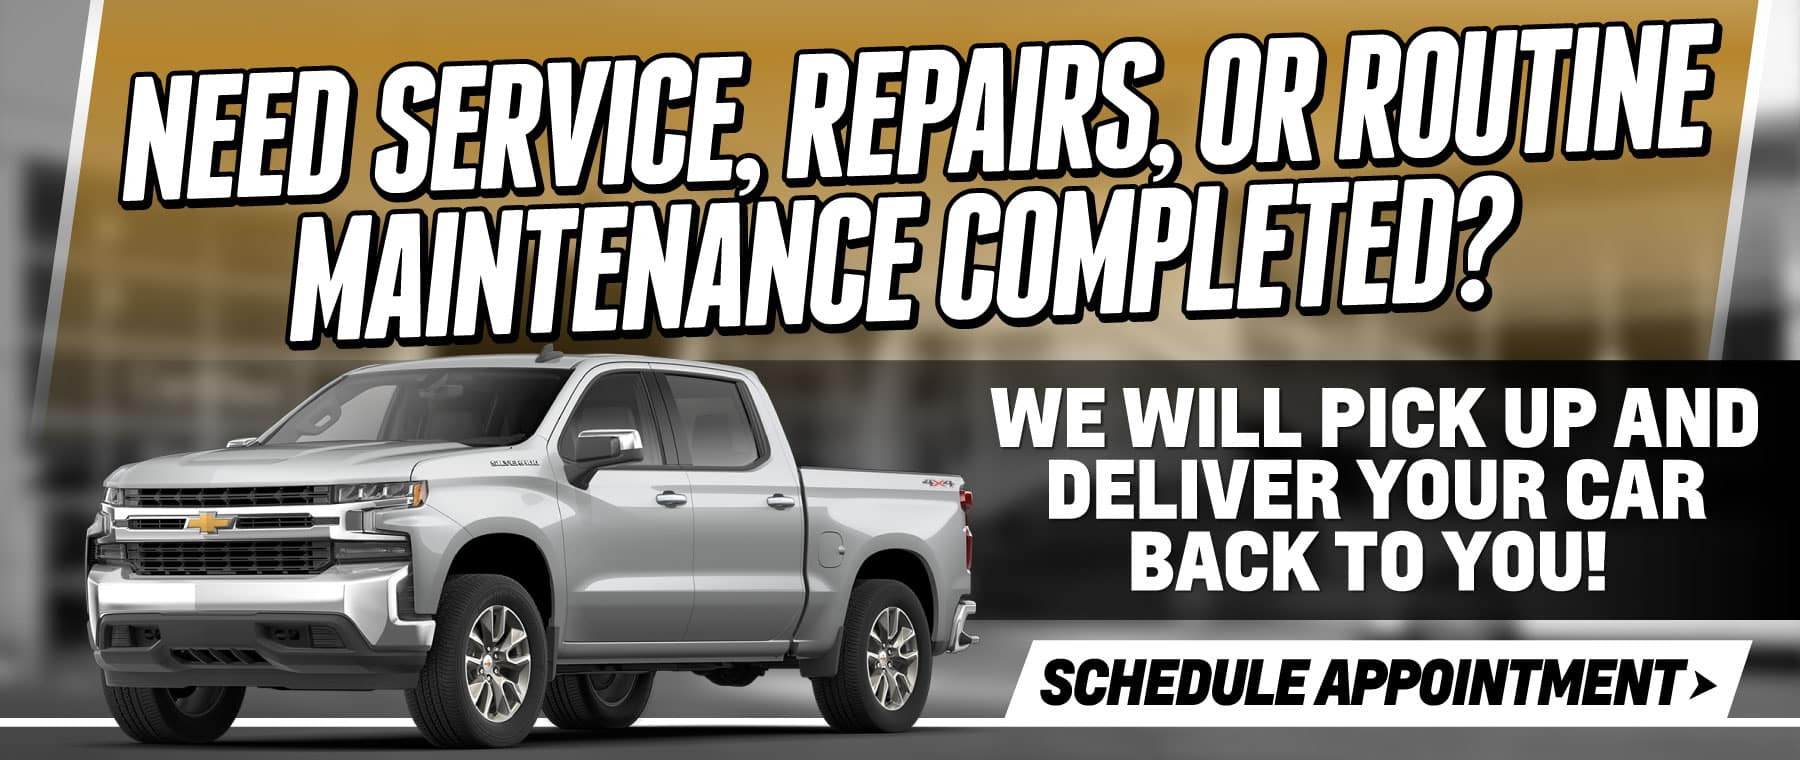 Need Service? We will pick up and deliver your car - Schedule Appointment